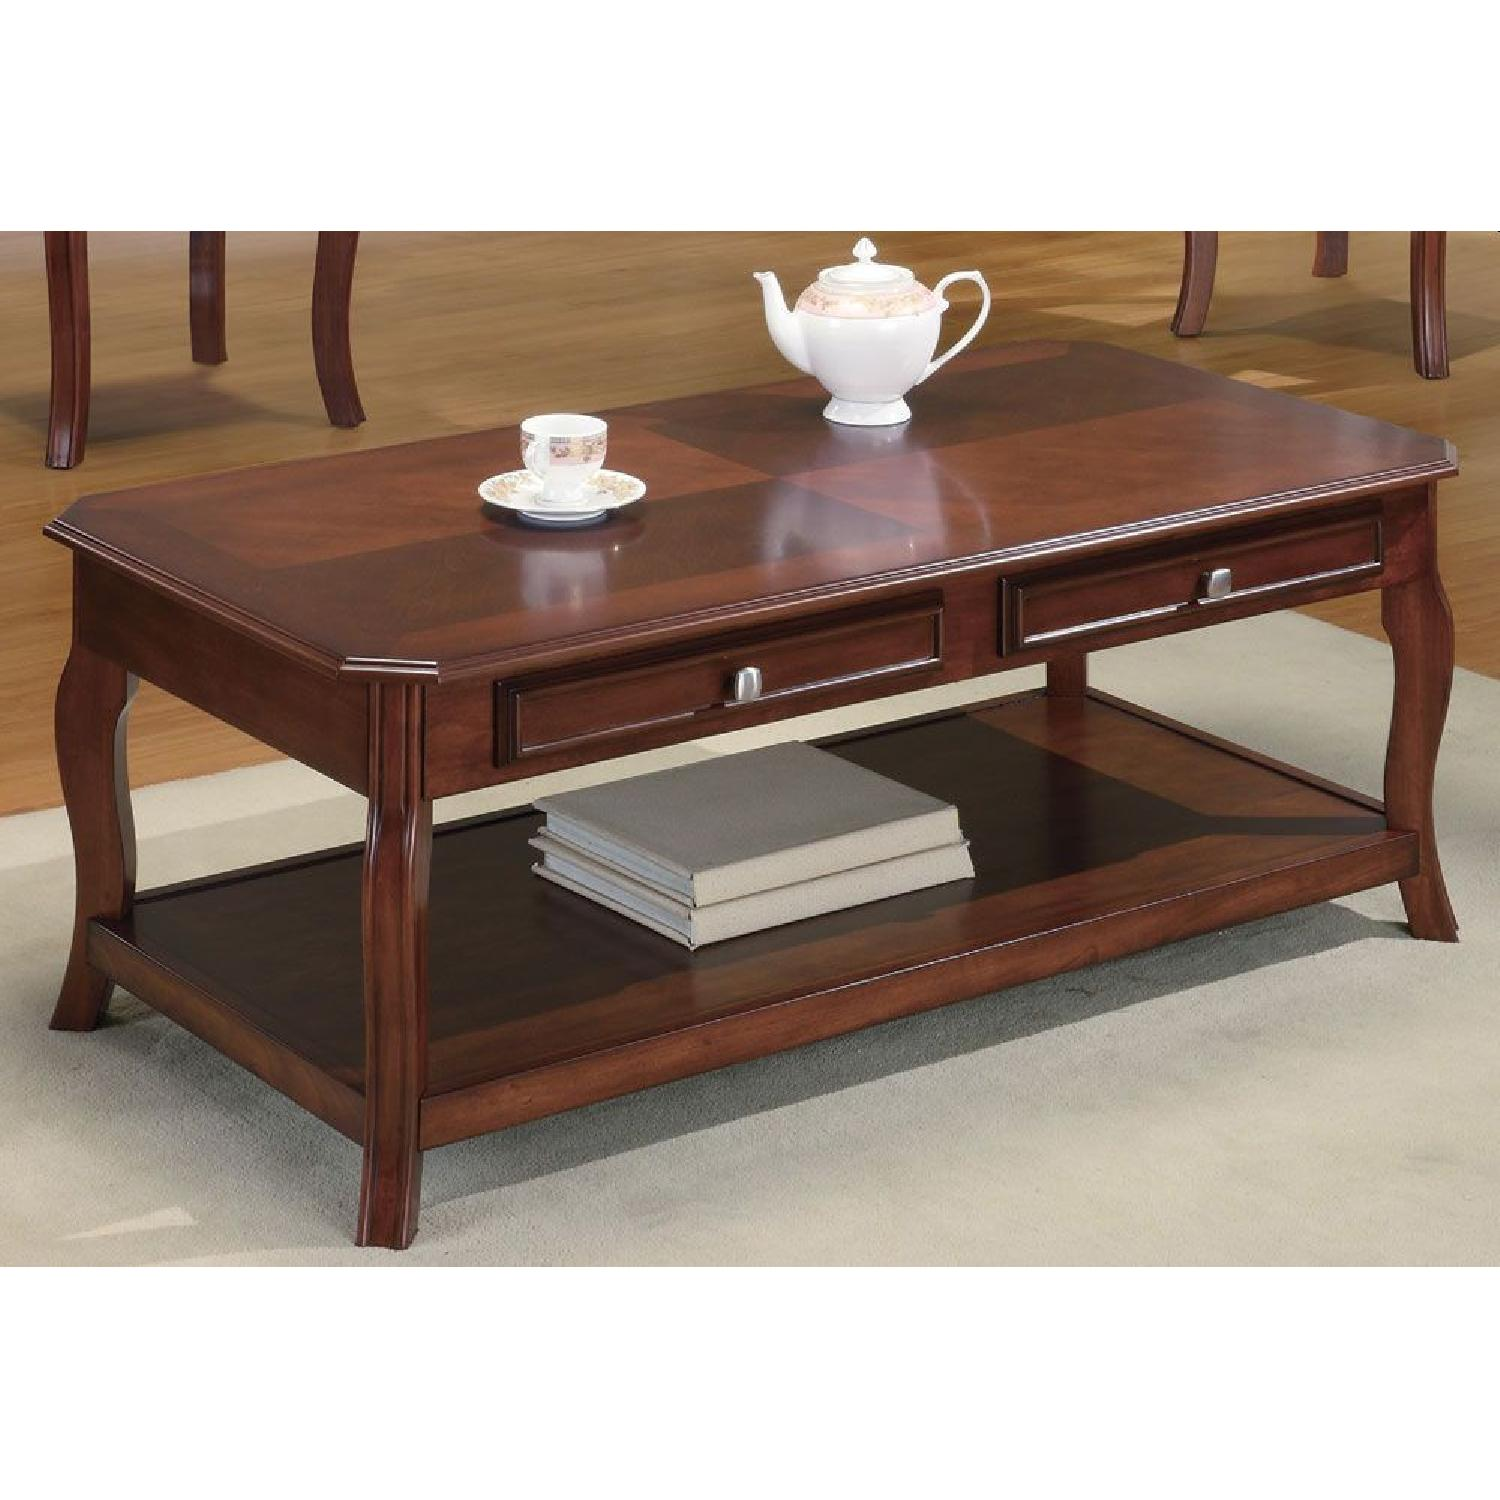 3-Piece Coffee & End Table Set in Warm Bourbon Finish - image-2